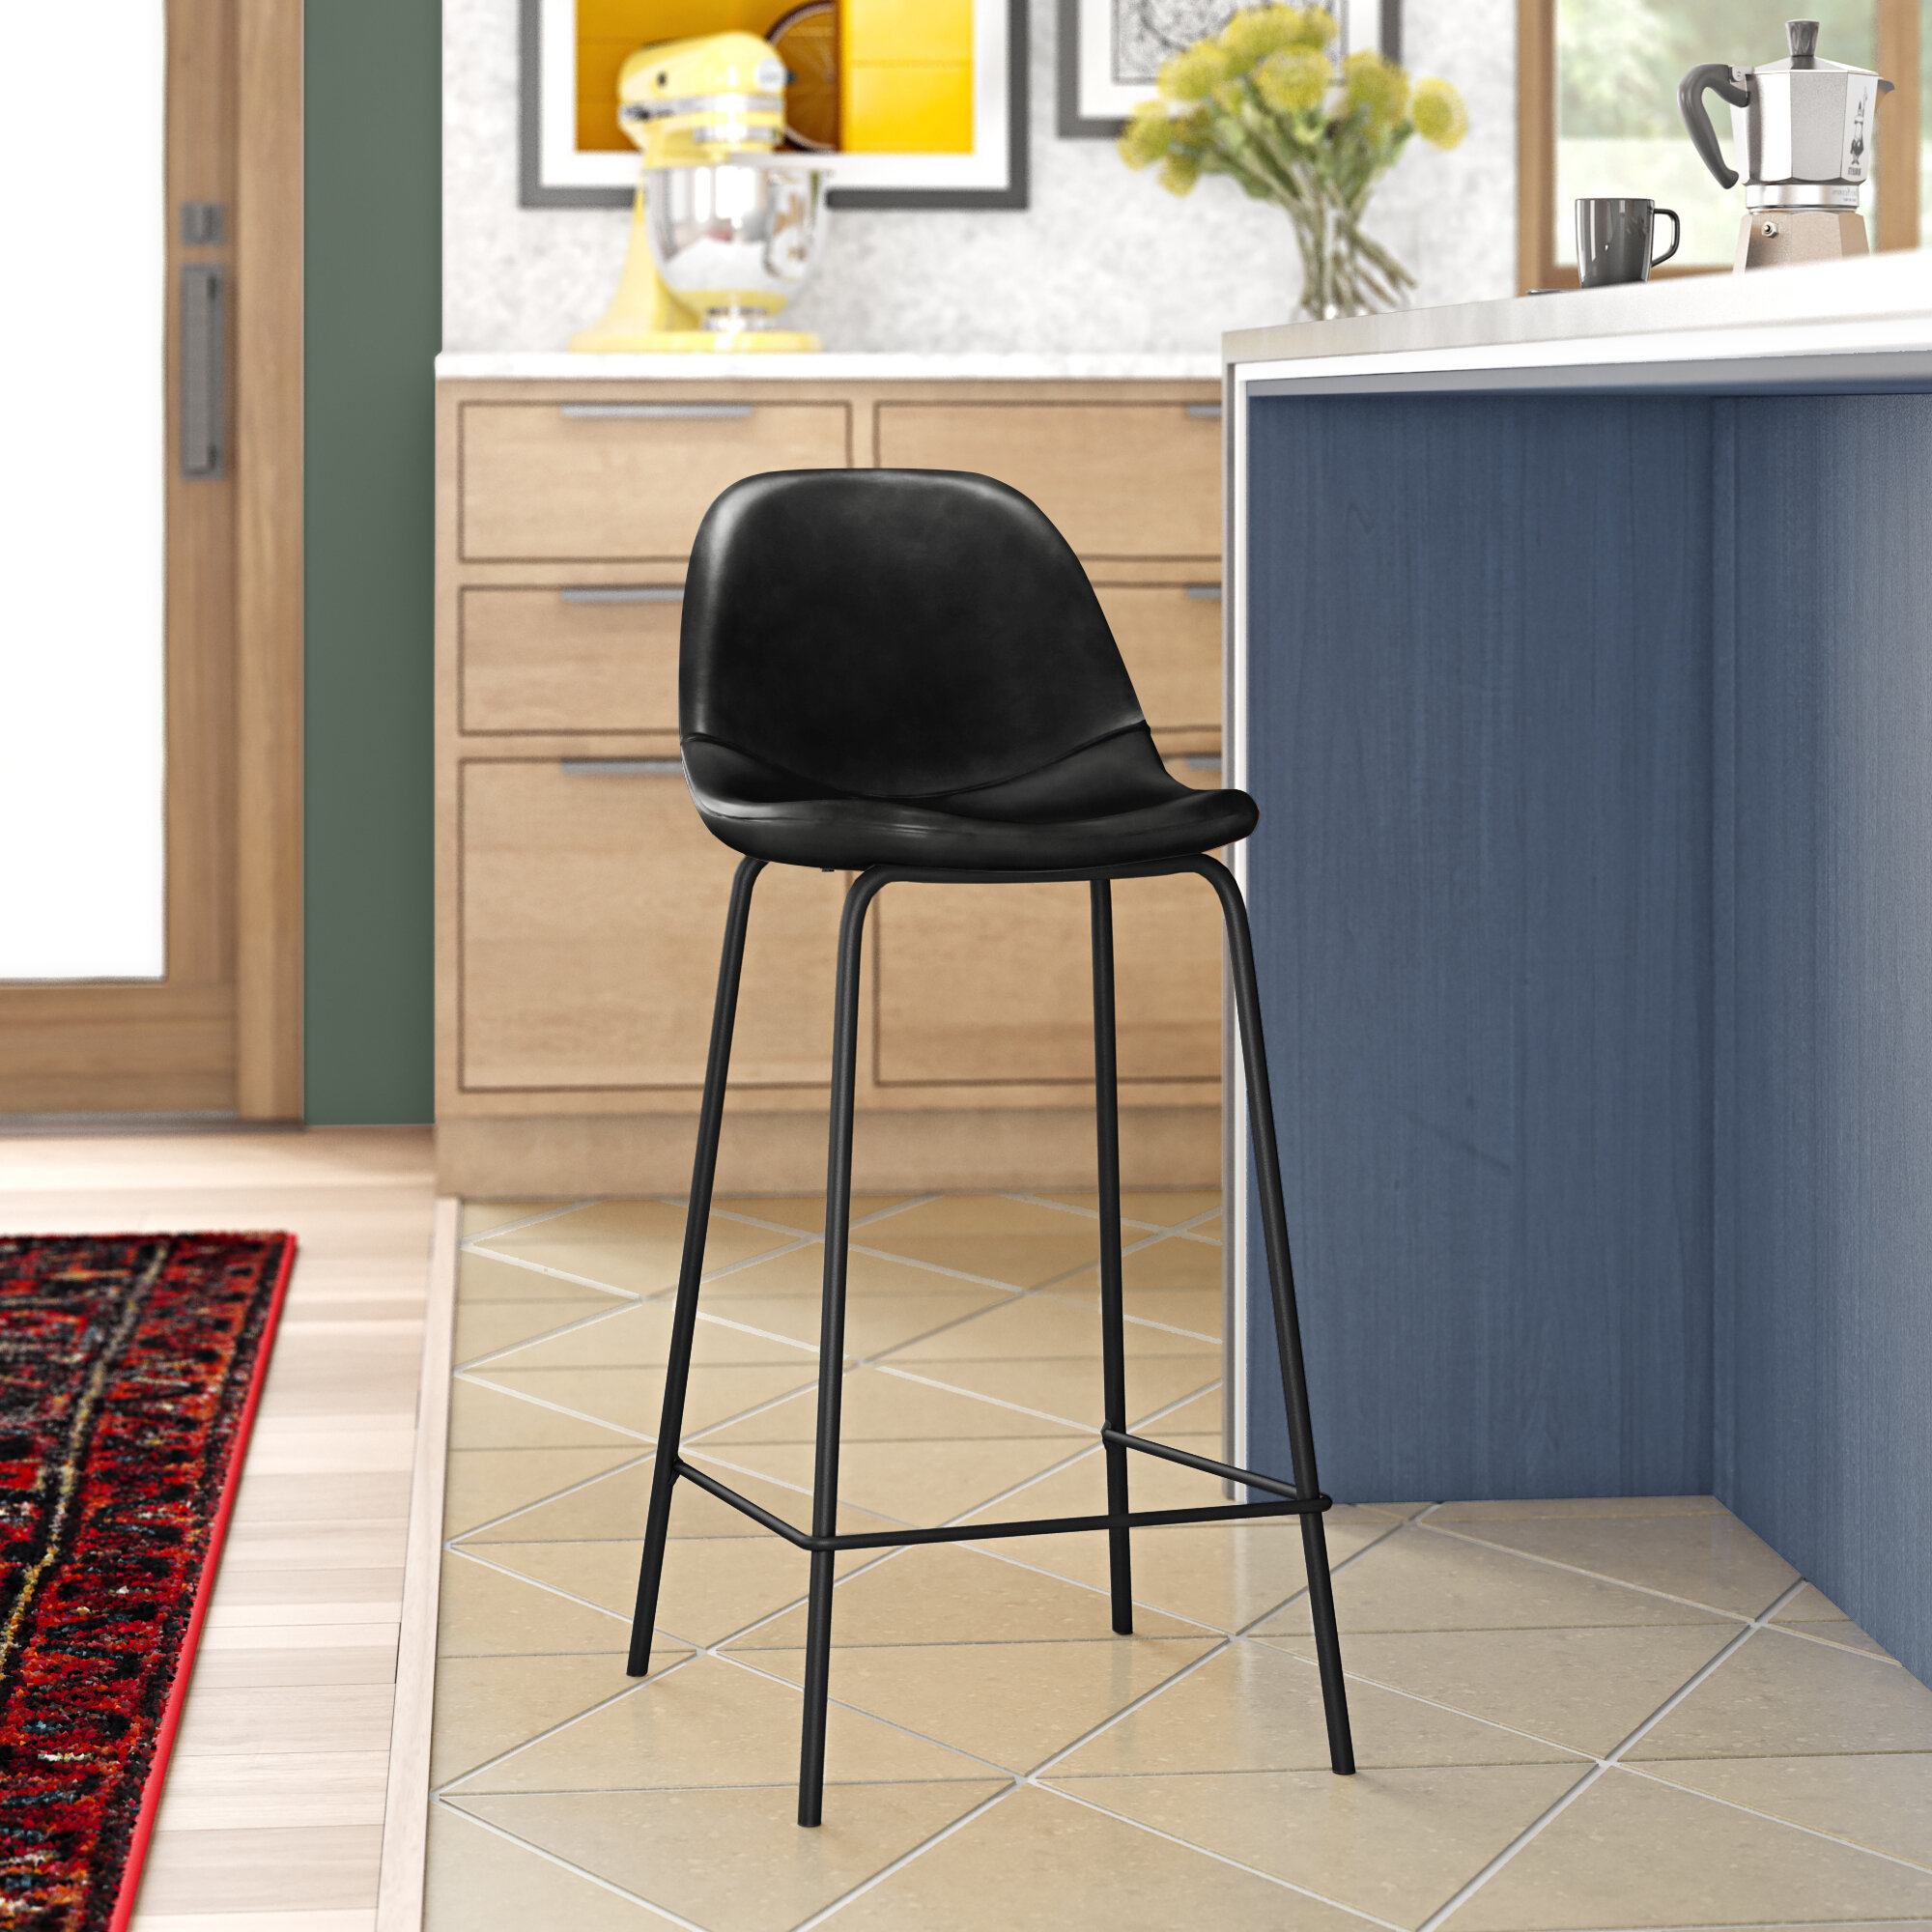 Grey White Bar Stools Counter Stools You Ll Love In 2021 Wayfair